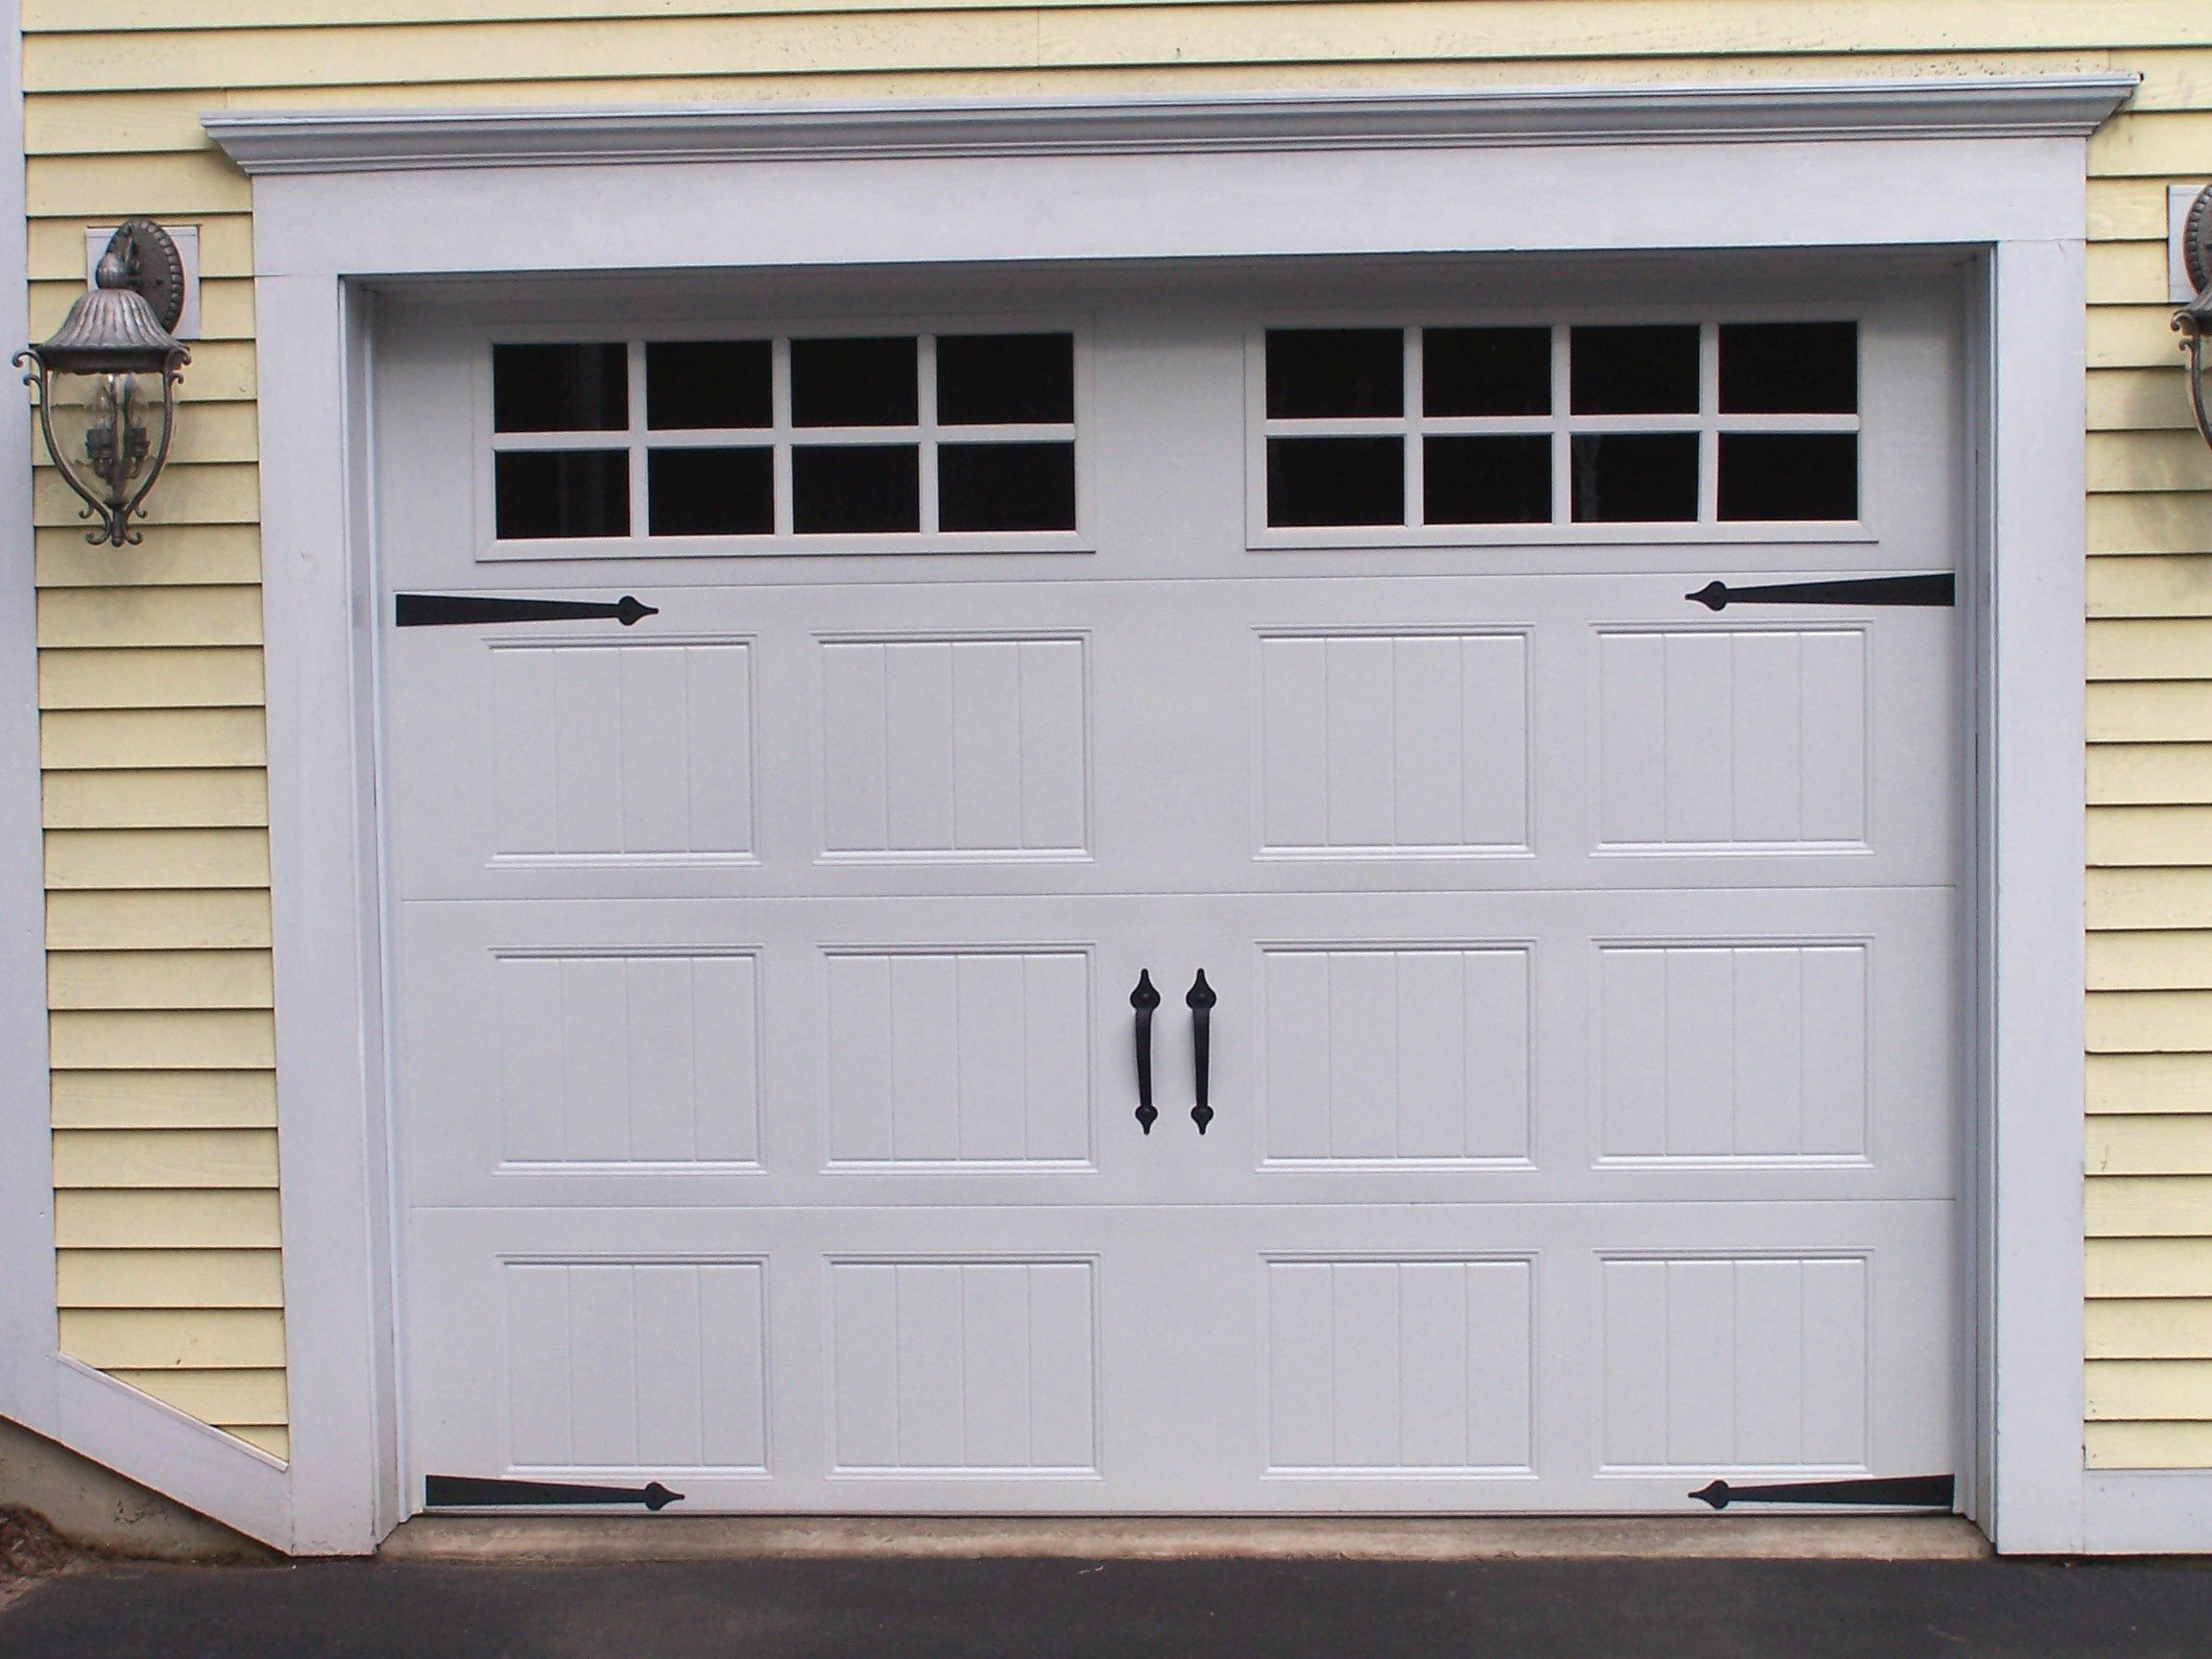 peak garage doors inc Aero garage door is known for exceptional garage door repair, offers liftmaster garage remotes &openers, and proudly serves chantilly and fairfax.